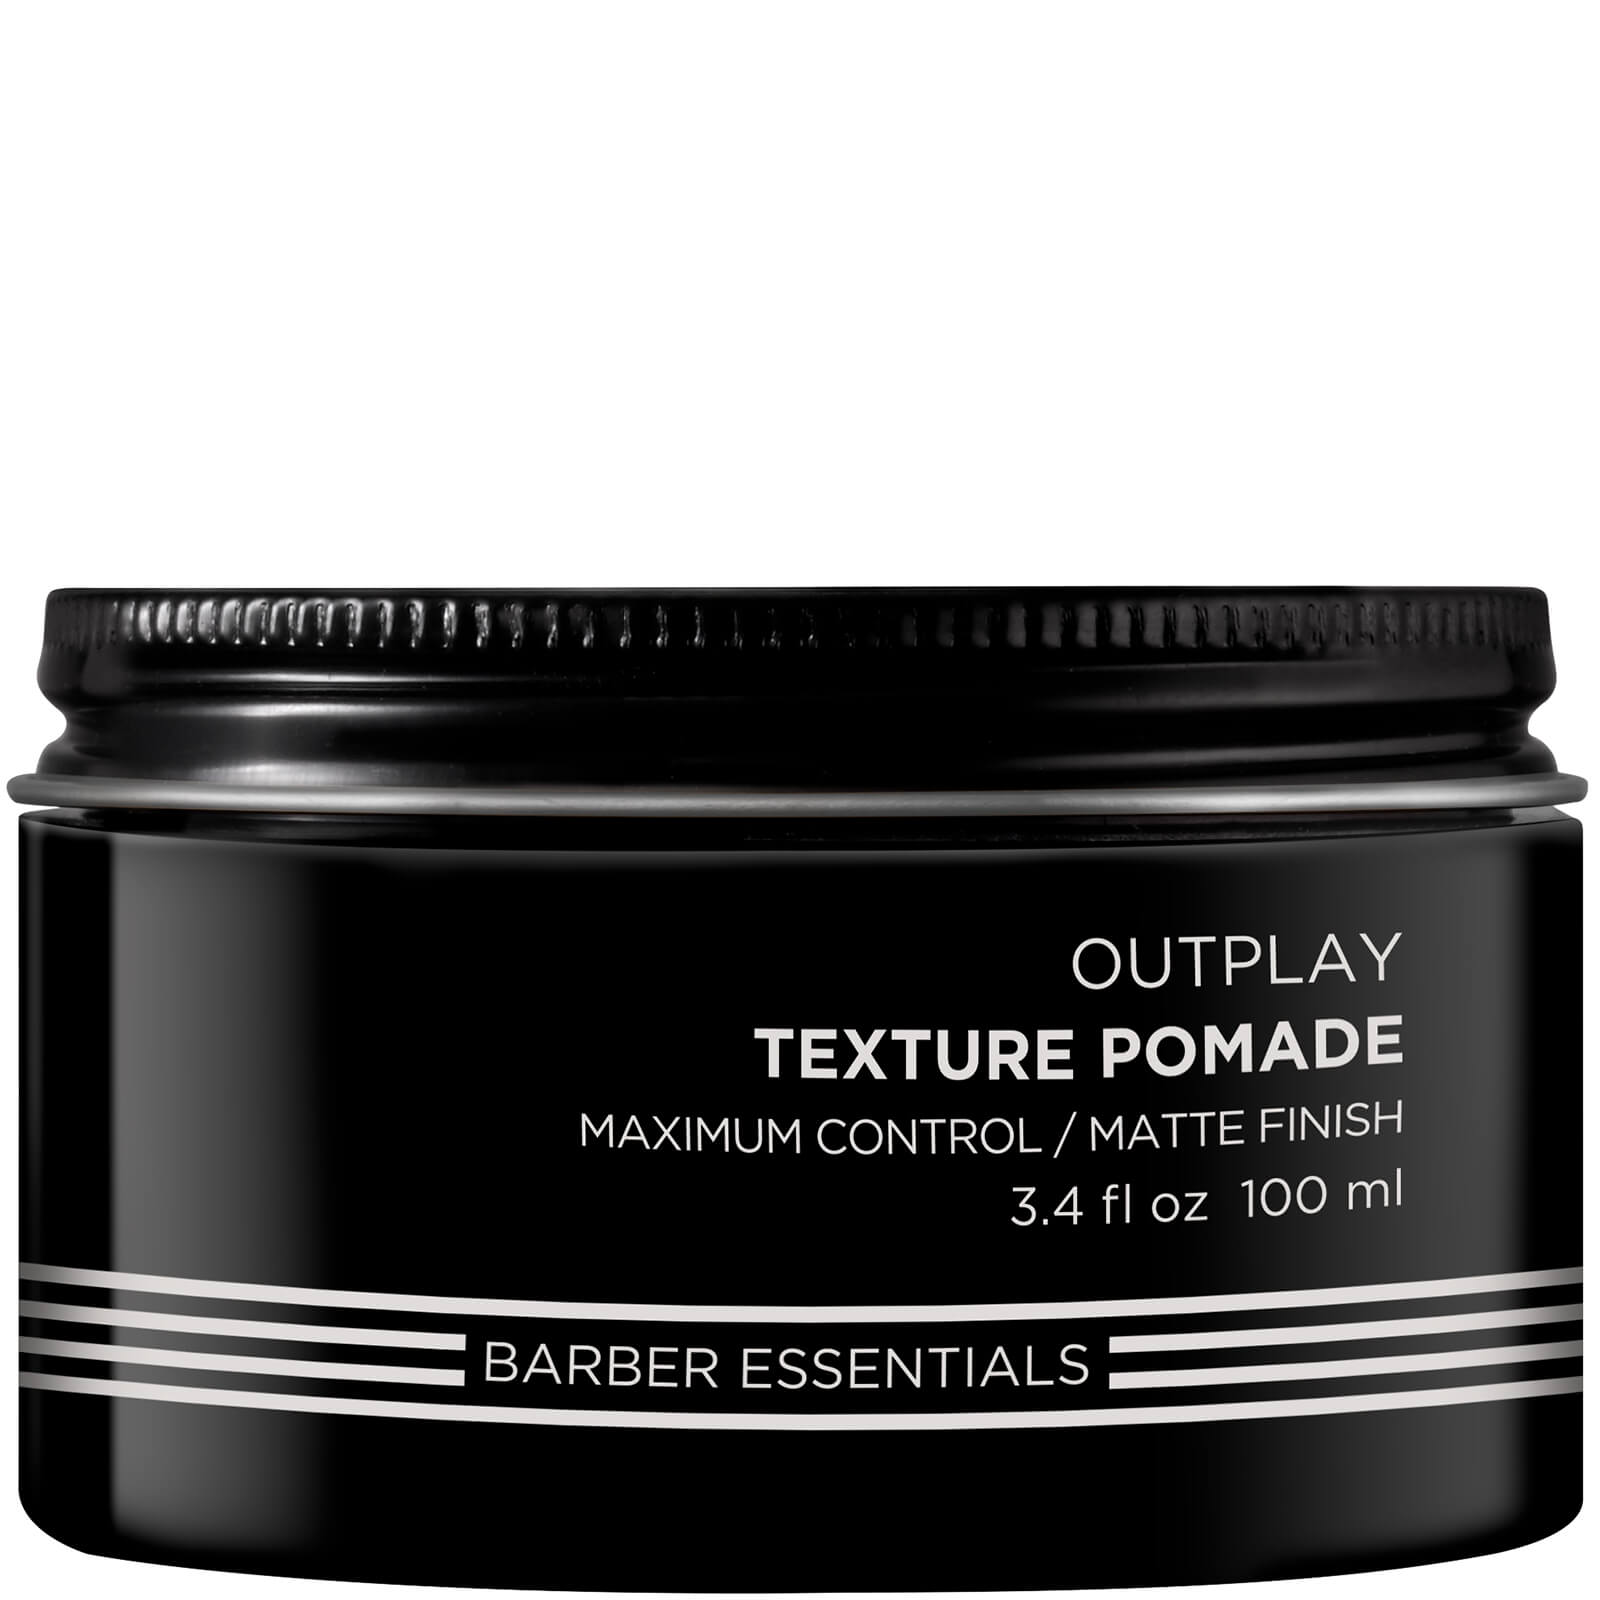 REDKEN BREWS MEN'S OUTPLAY TEXTURE POMADA 100ML